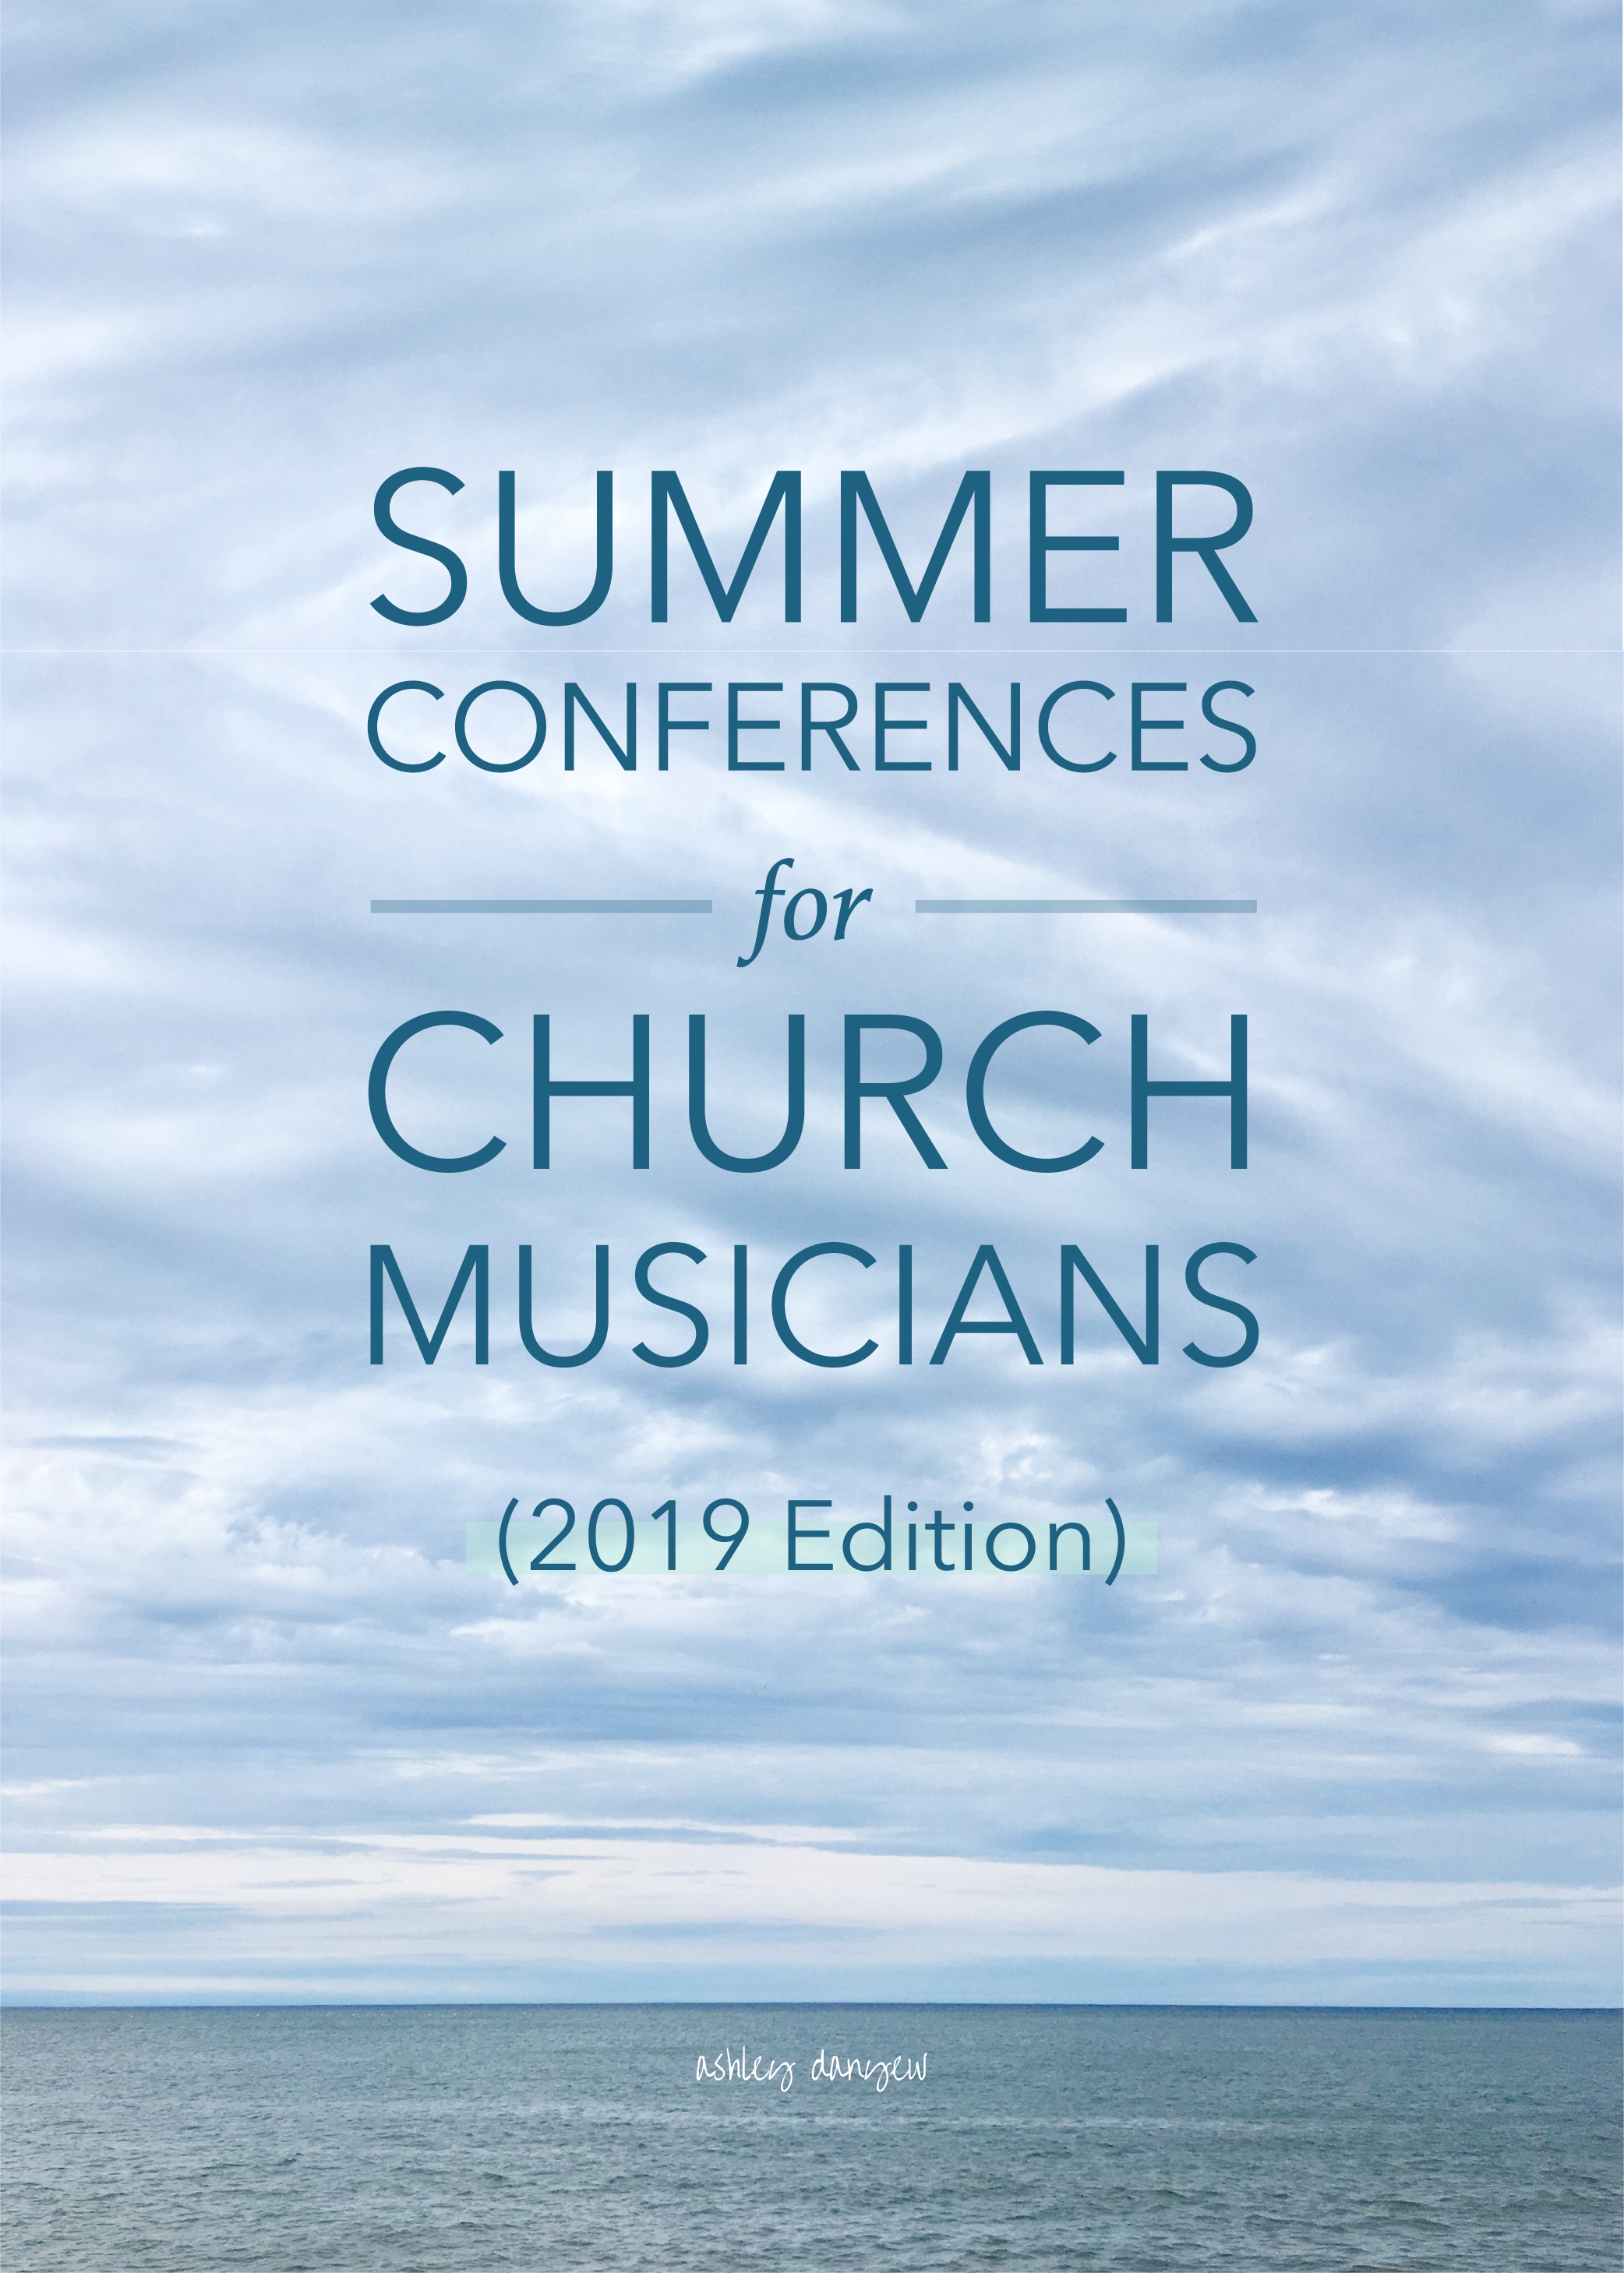 Summer Conferences for Church Musicians (2019 Edition)-16.png